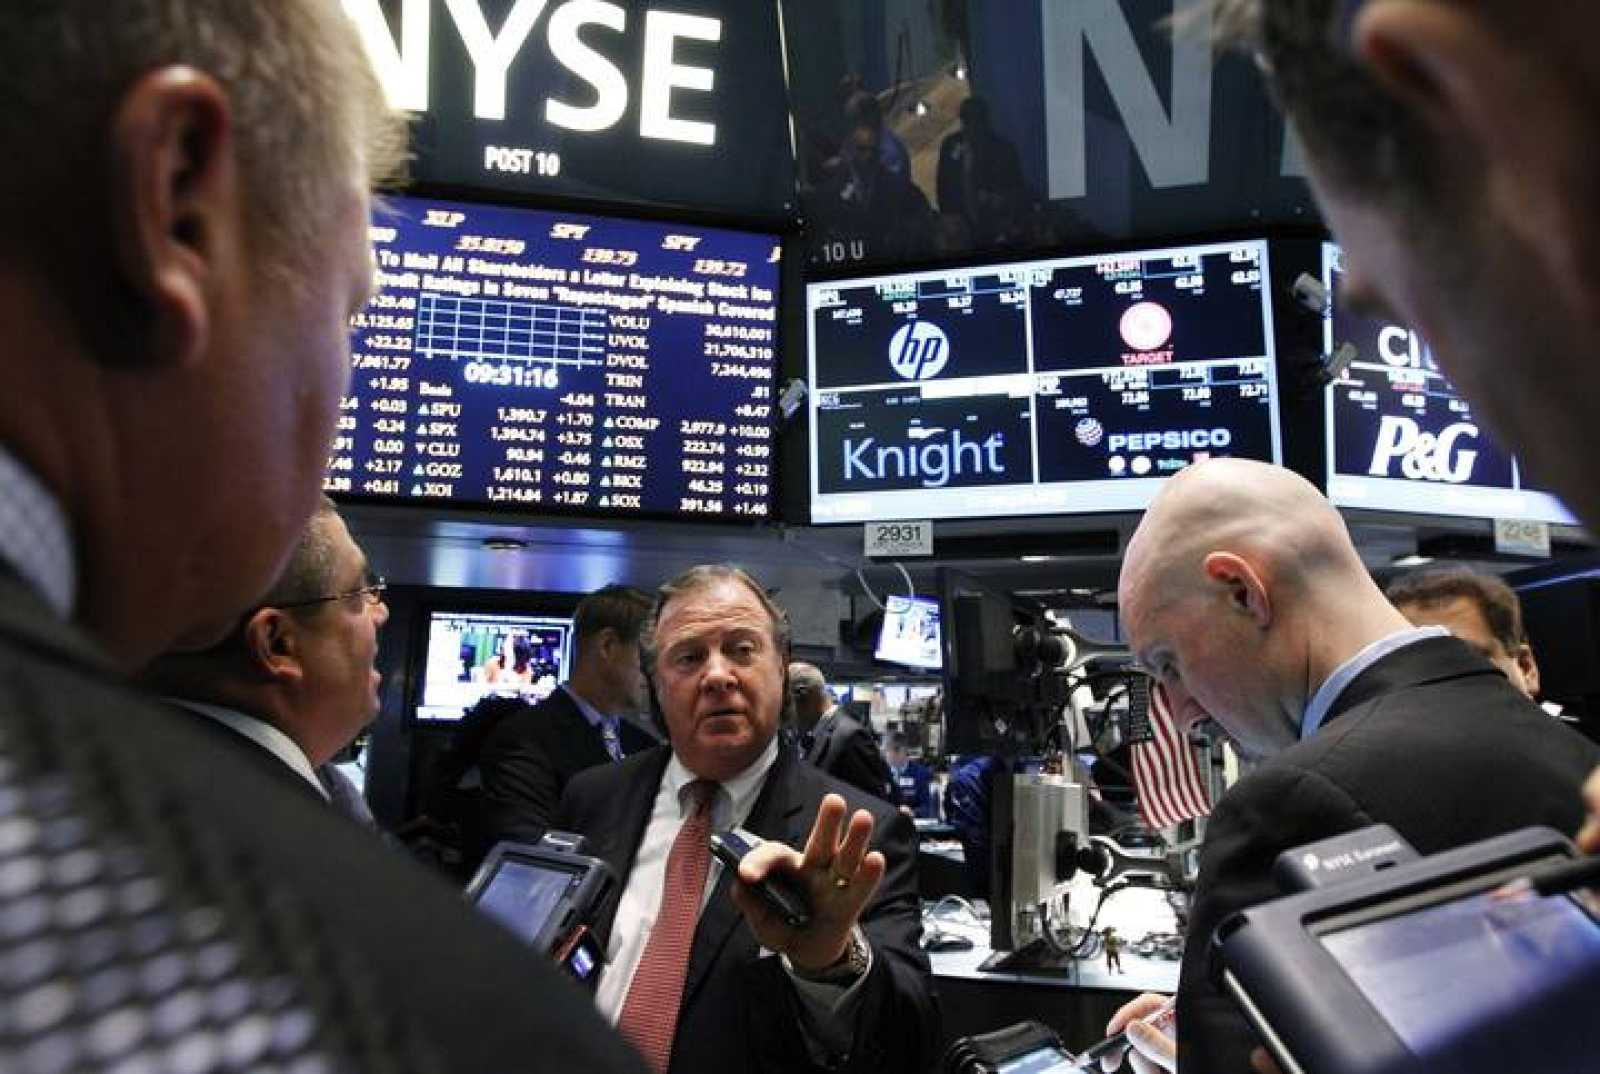 Traders gather at the Barclays Capital post that trades Knight Capital on the floor of the New York Stock Exchange